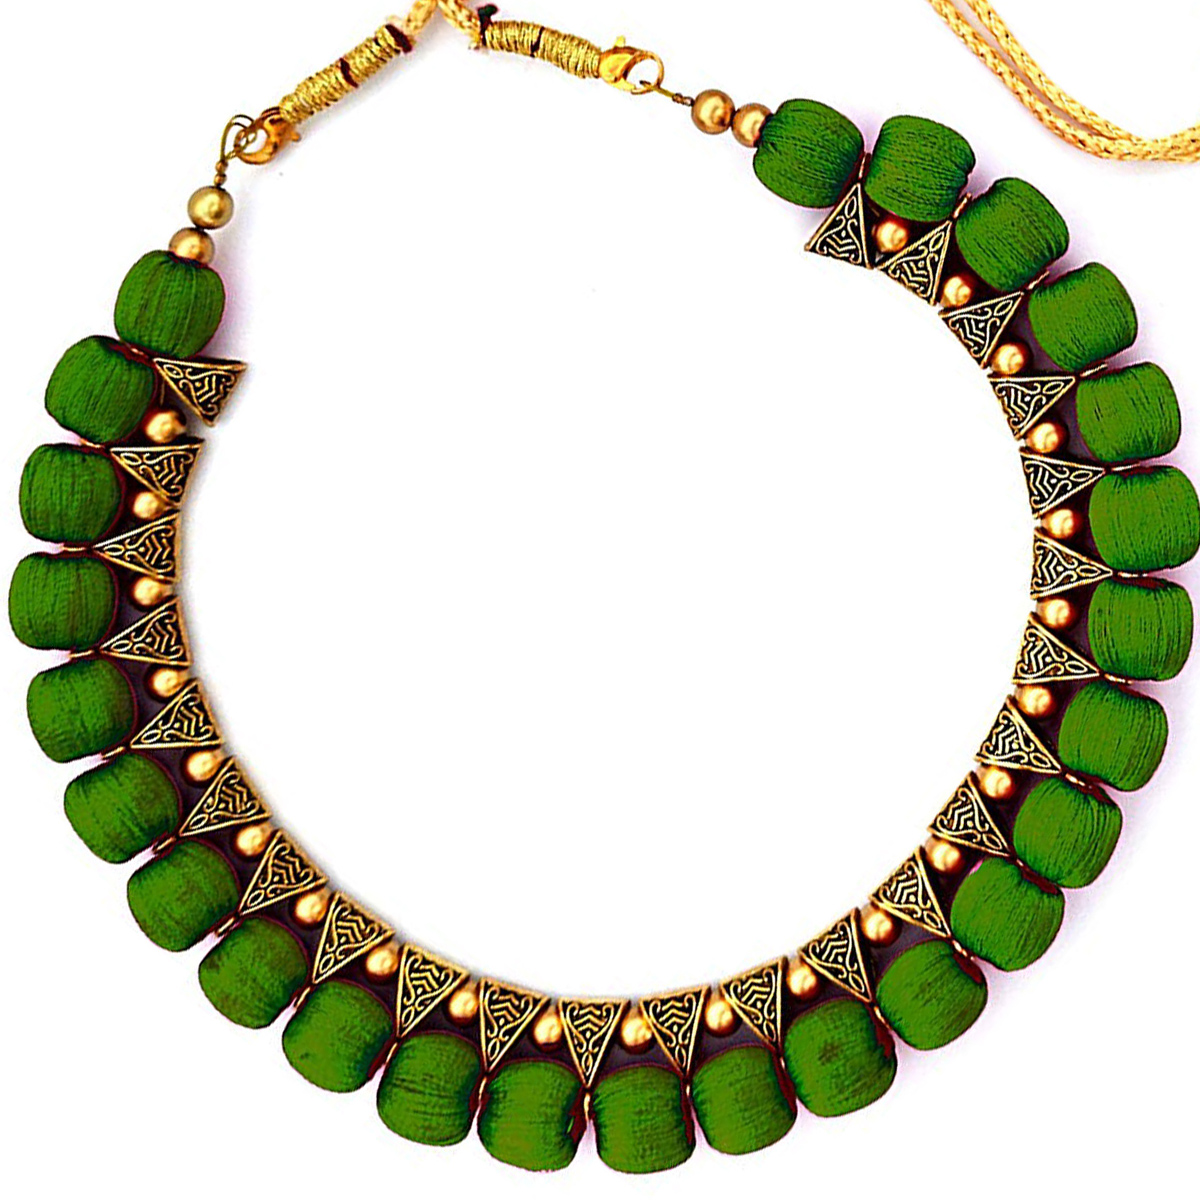 Marvellous Dark Green Colored Fancy Silk Thread & Moti Work Necklace